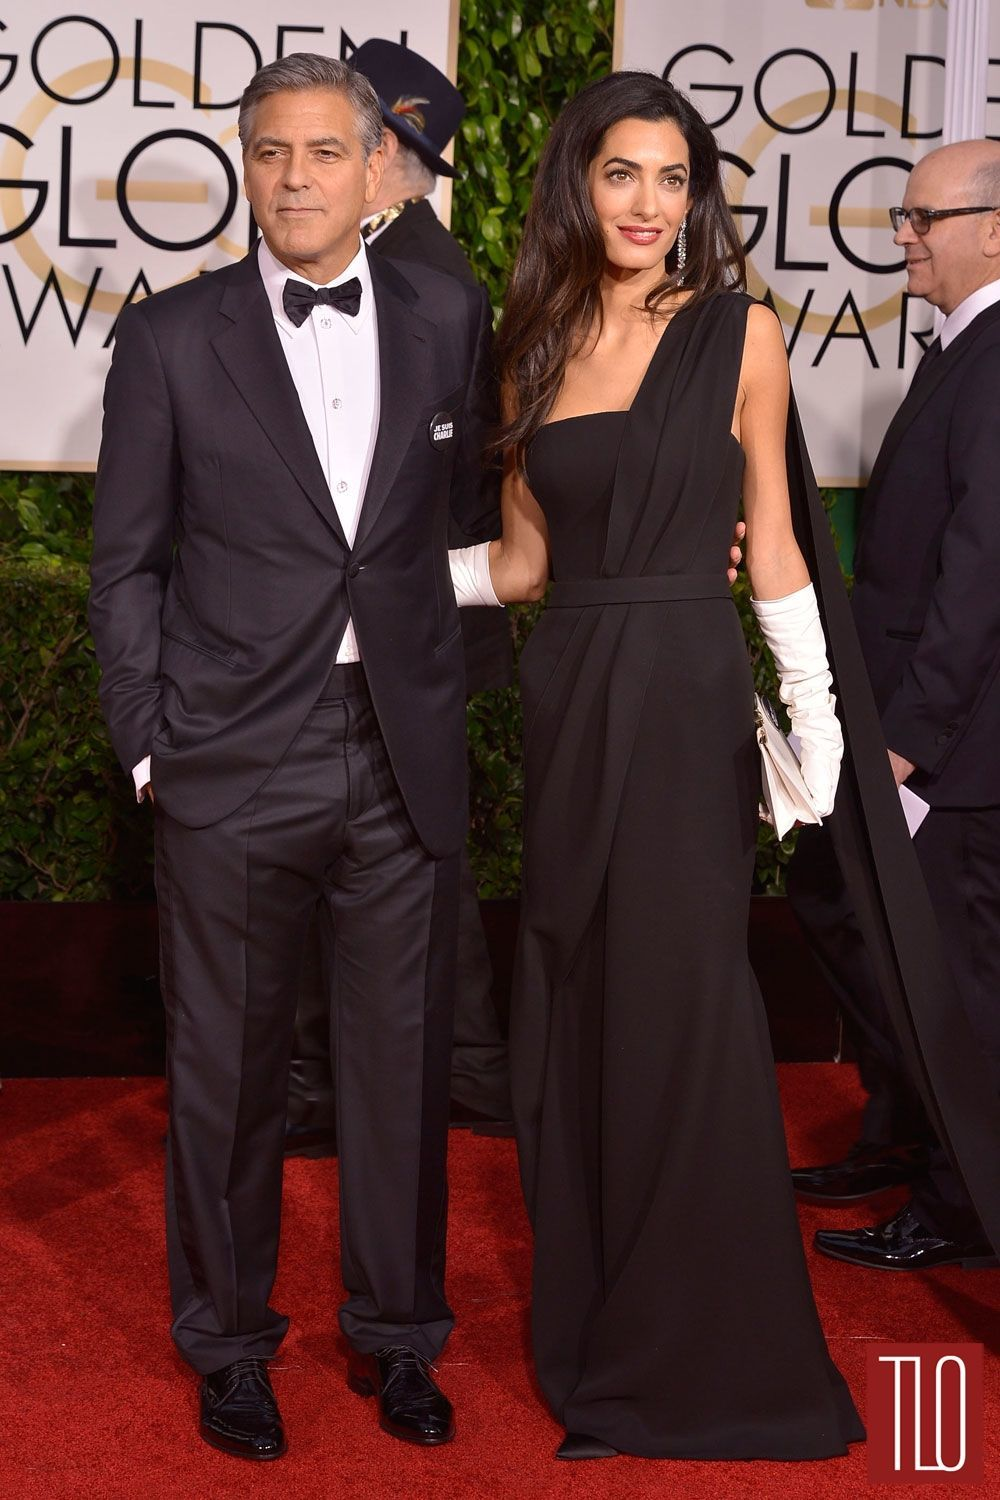 Golden Globes 2015: George Clooney in Armani and Amal ...